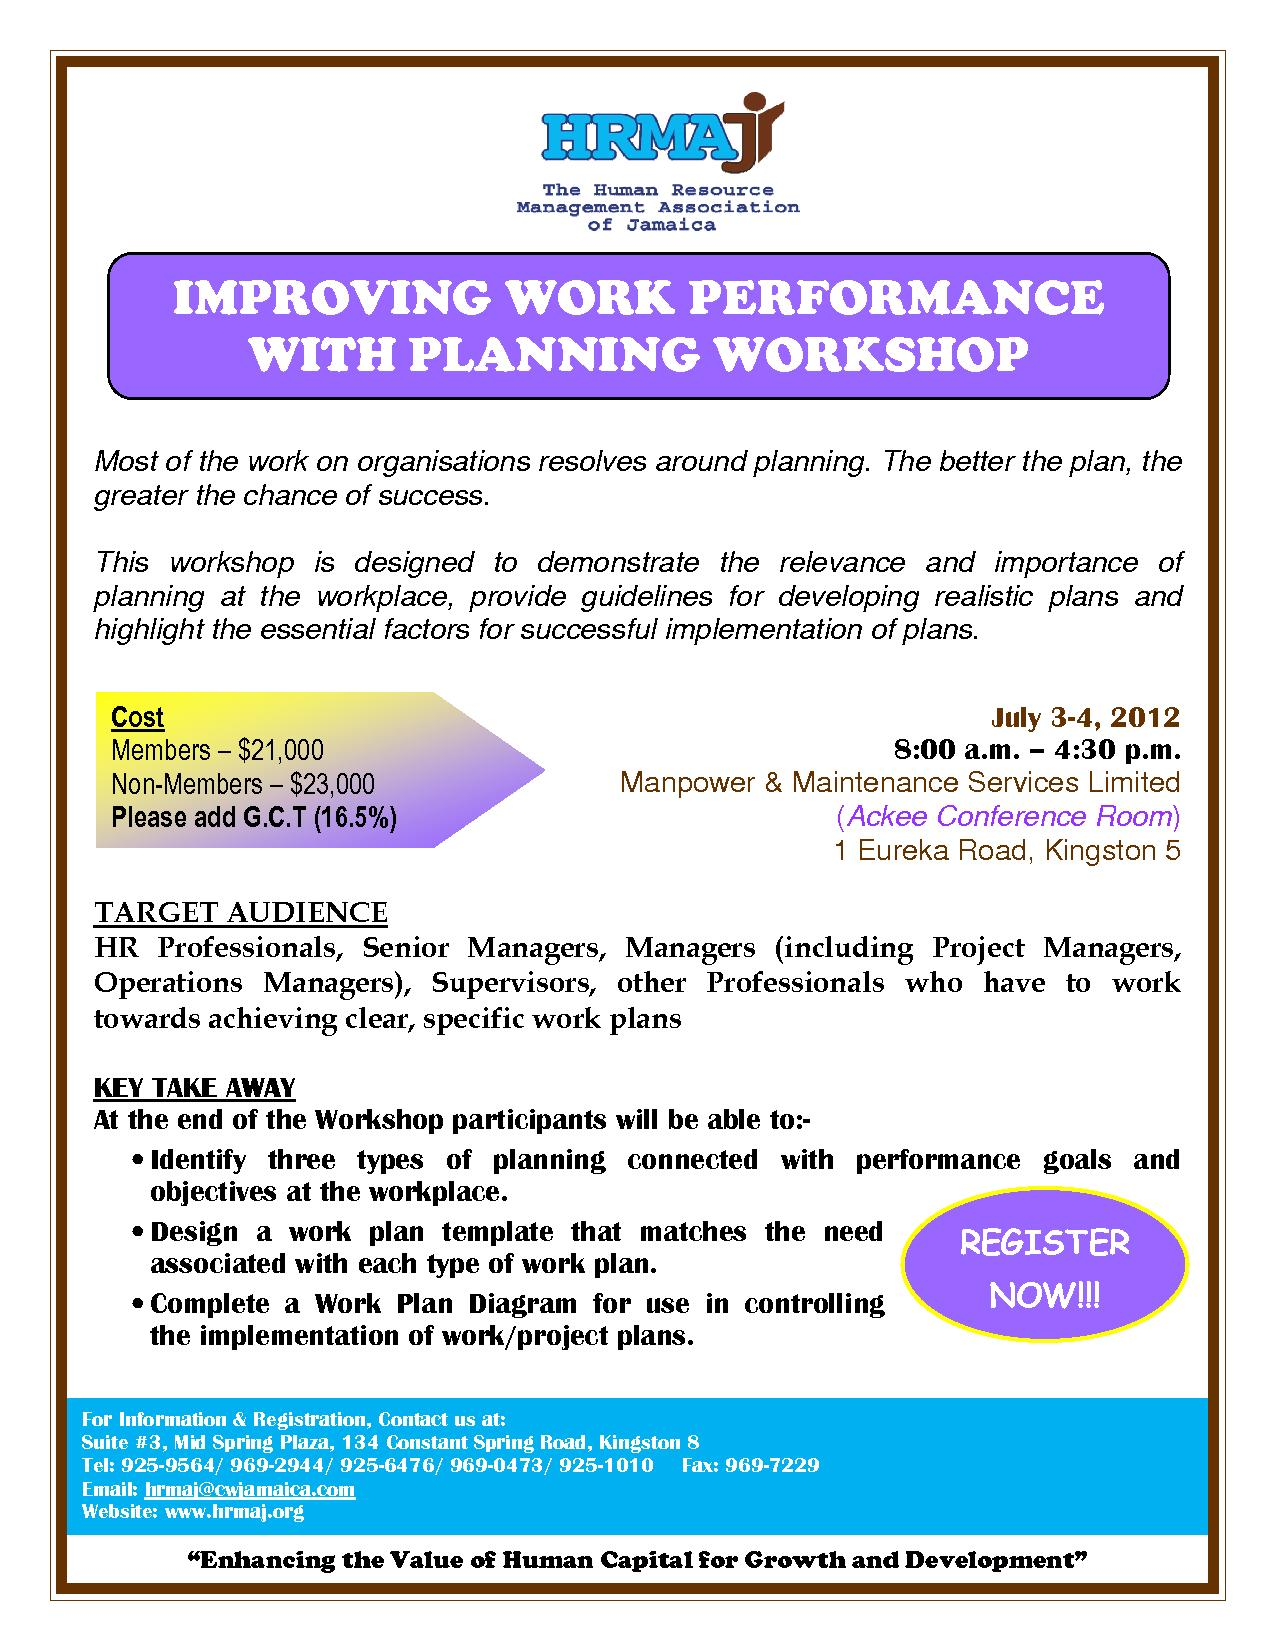 Improving Work Performance with Planning Workshop